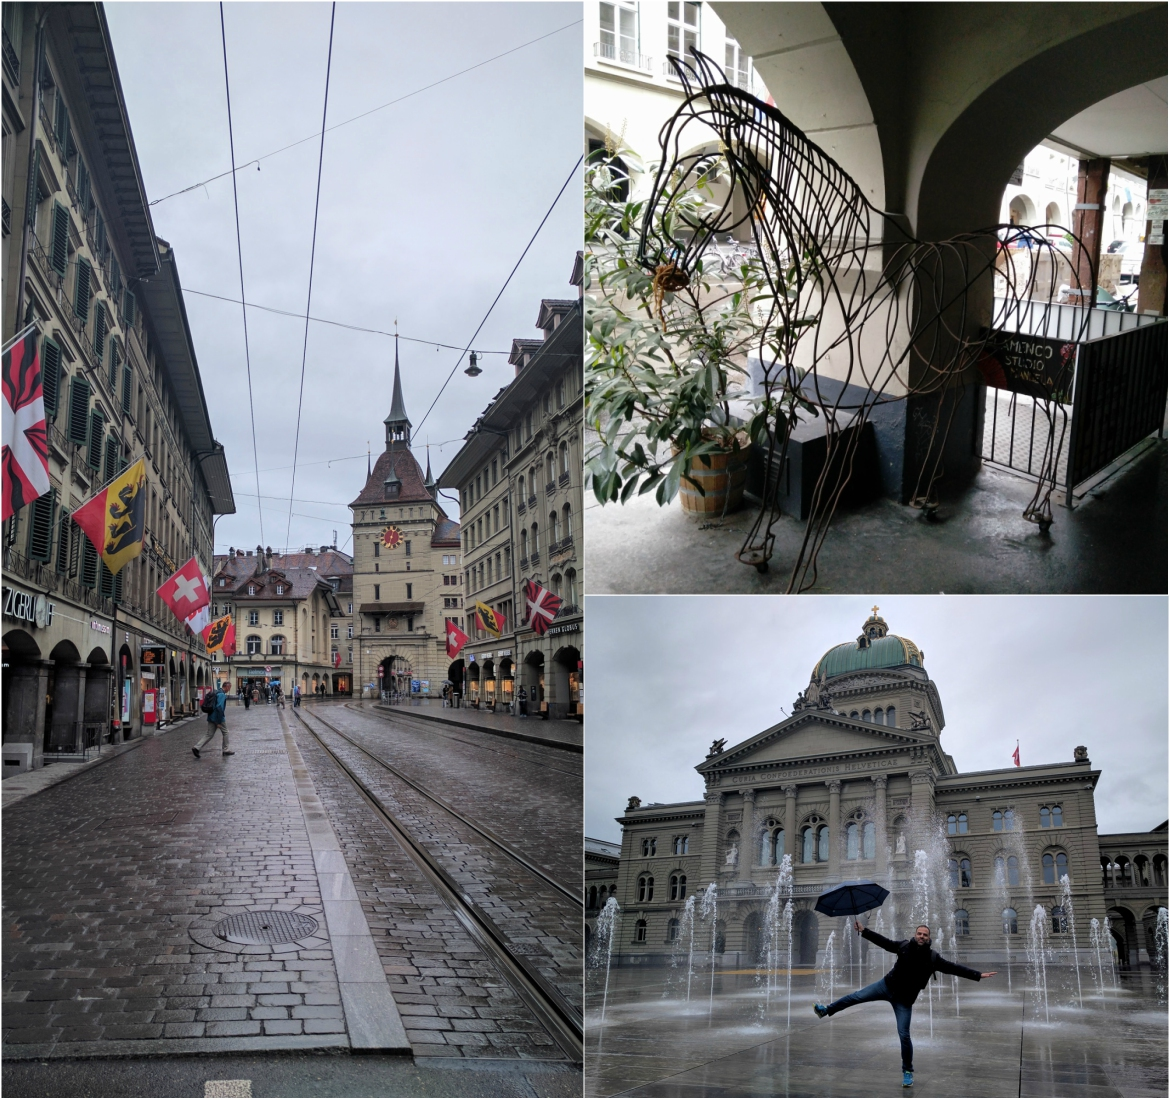 Enjoying architecture and modern art at the Swiss capital